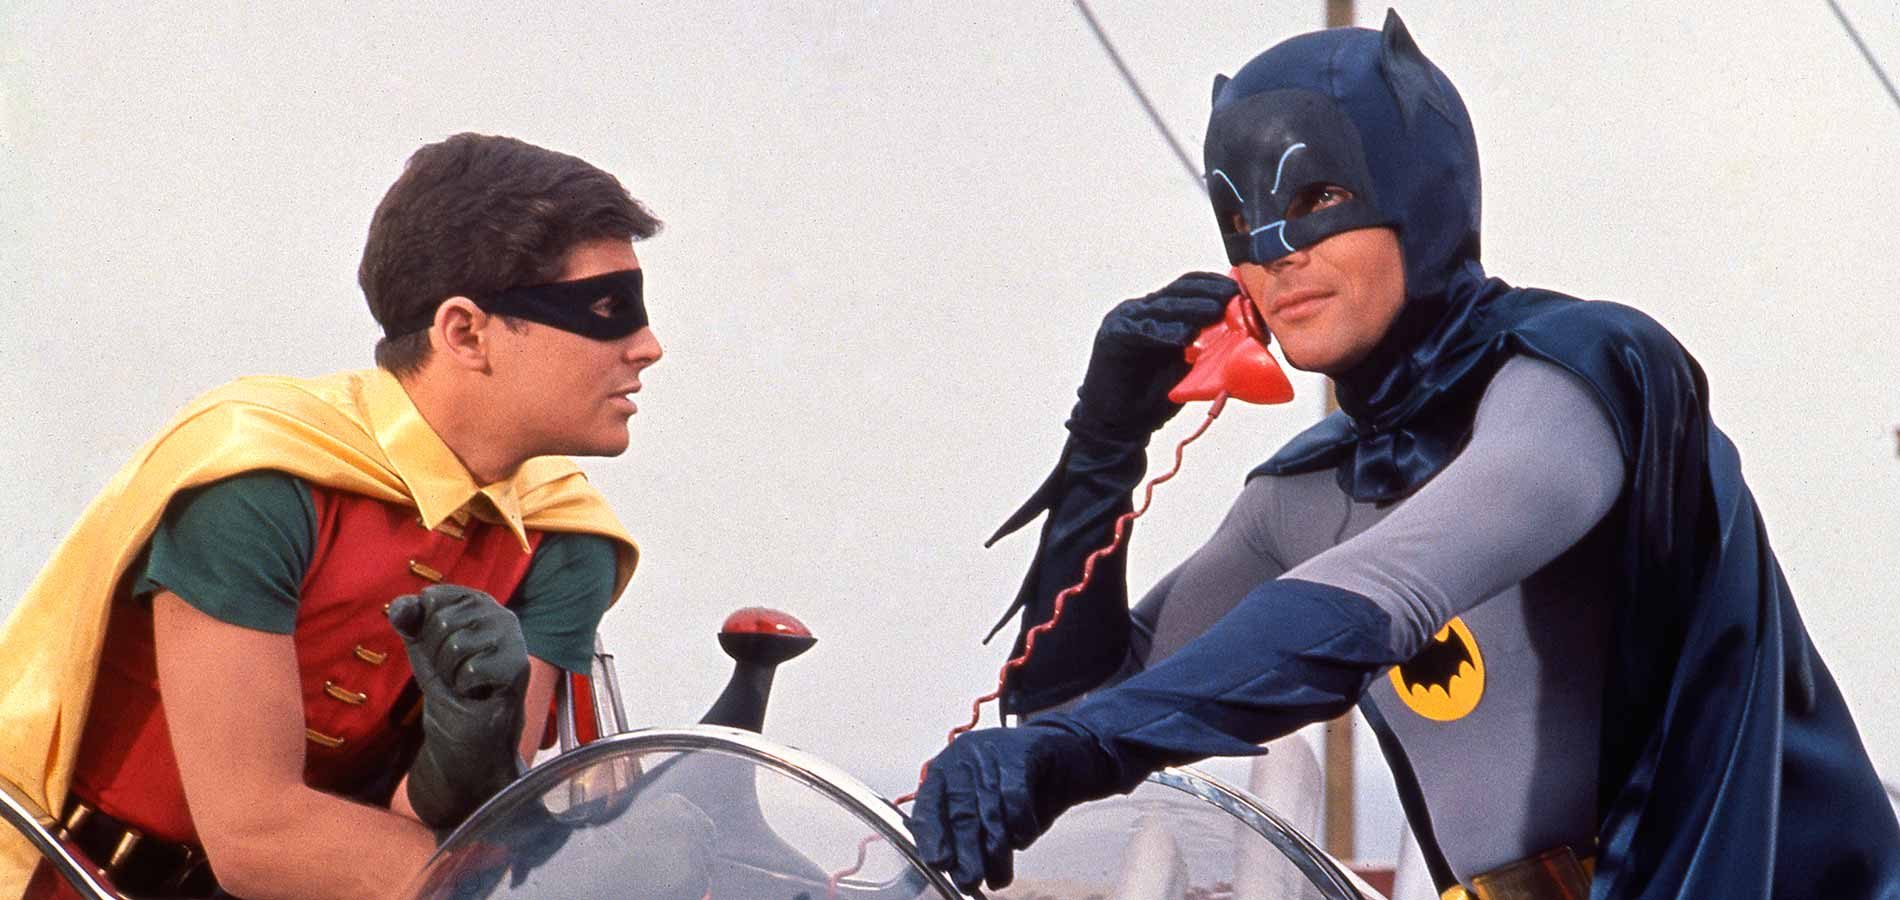 Real-life depiction of me in action on the Bat Phone.